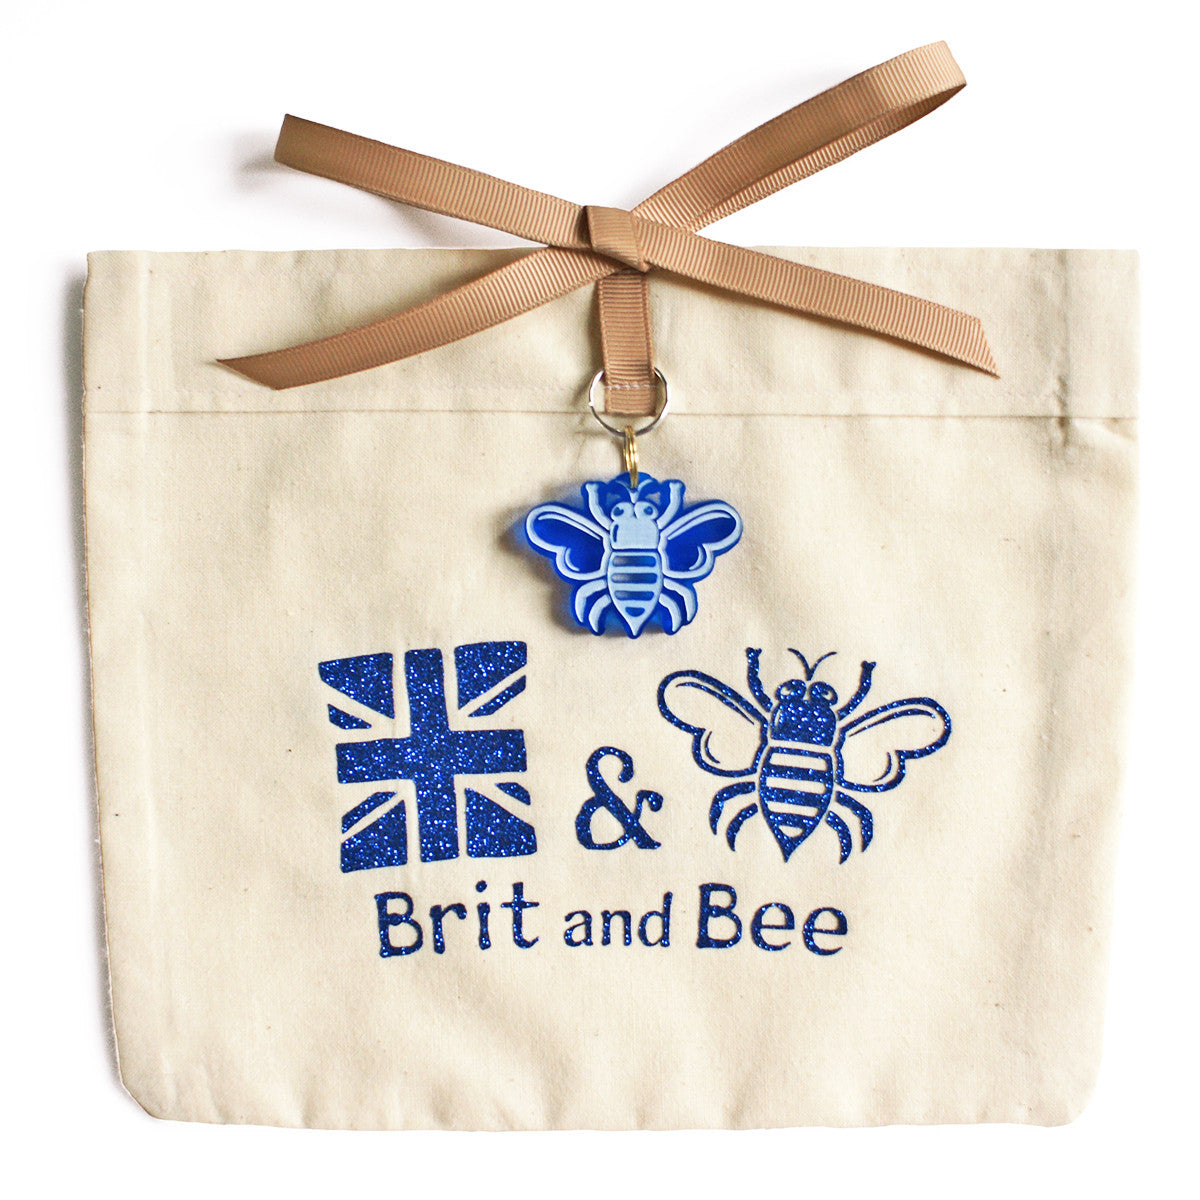 Brit and Bee Sorority Lil' Decal - Sigma Delta Tau